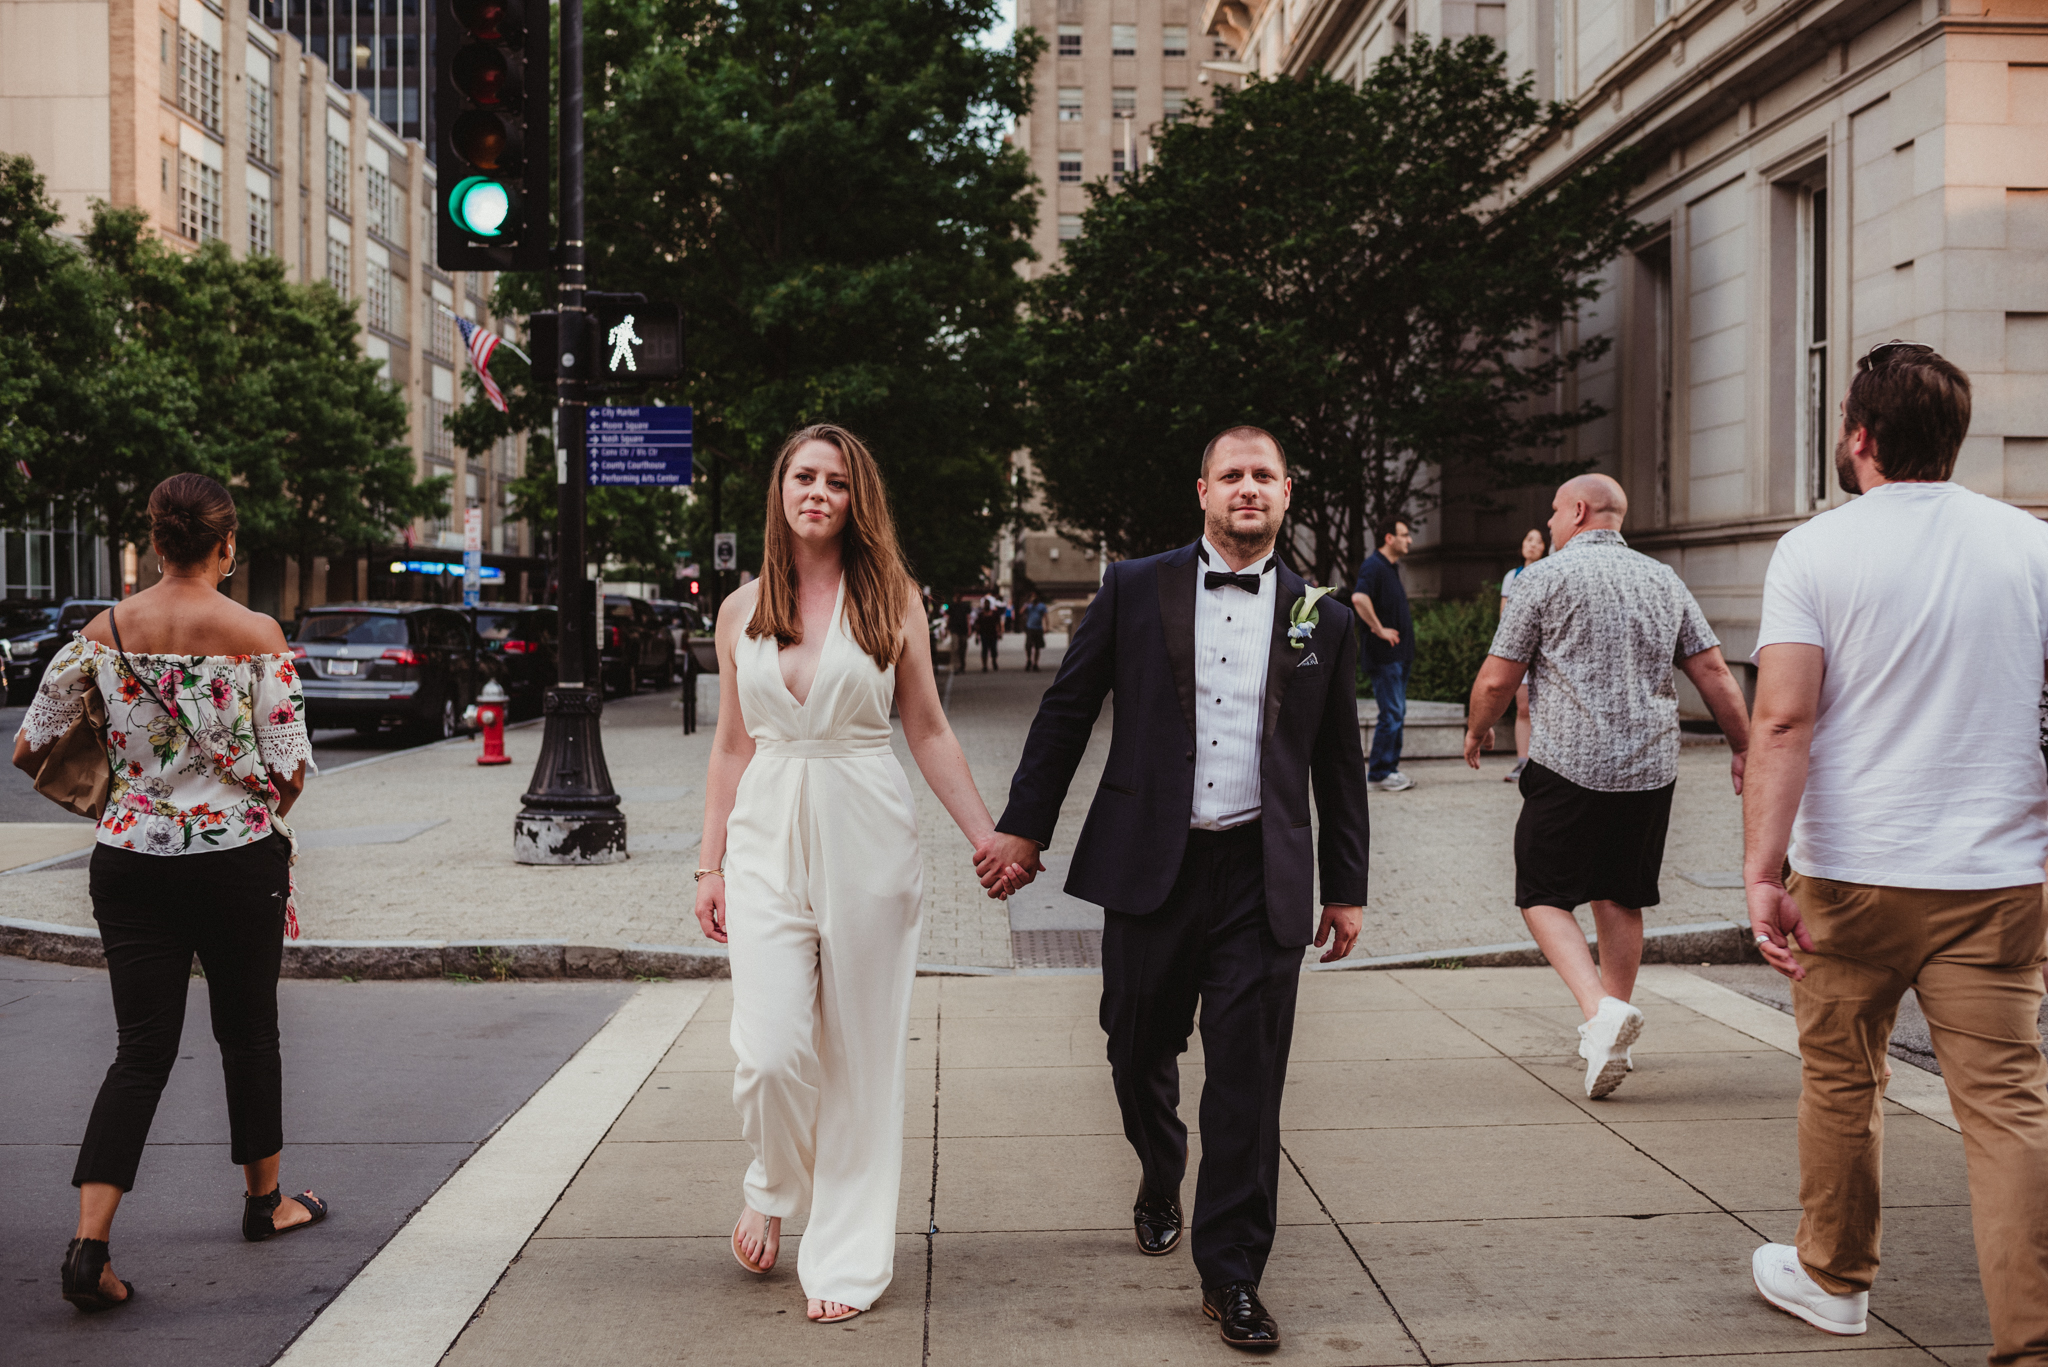 Raleigh-wedding-photographer-bride-and-groom-portraits-walk-in-downtown-rose-trail-images.jpg